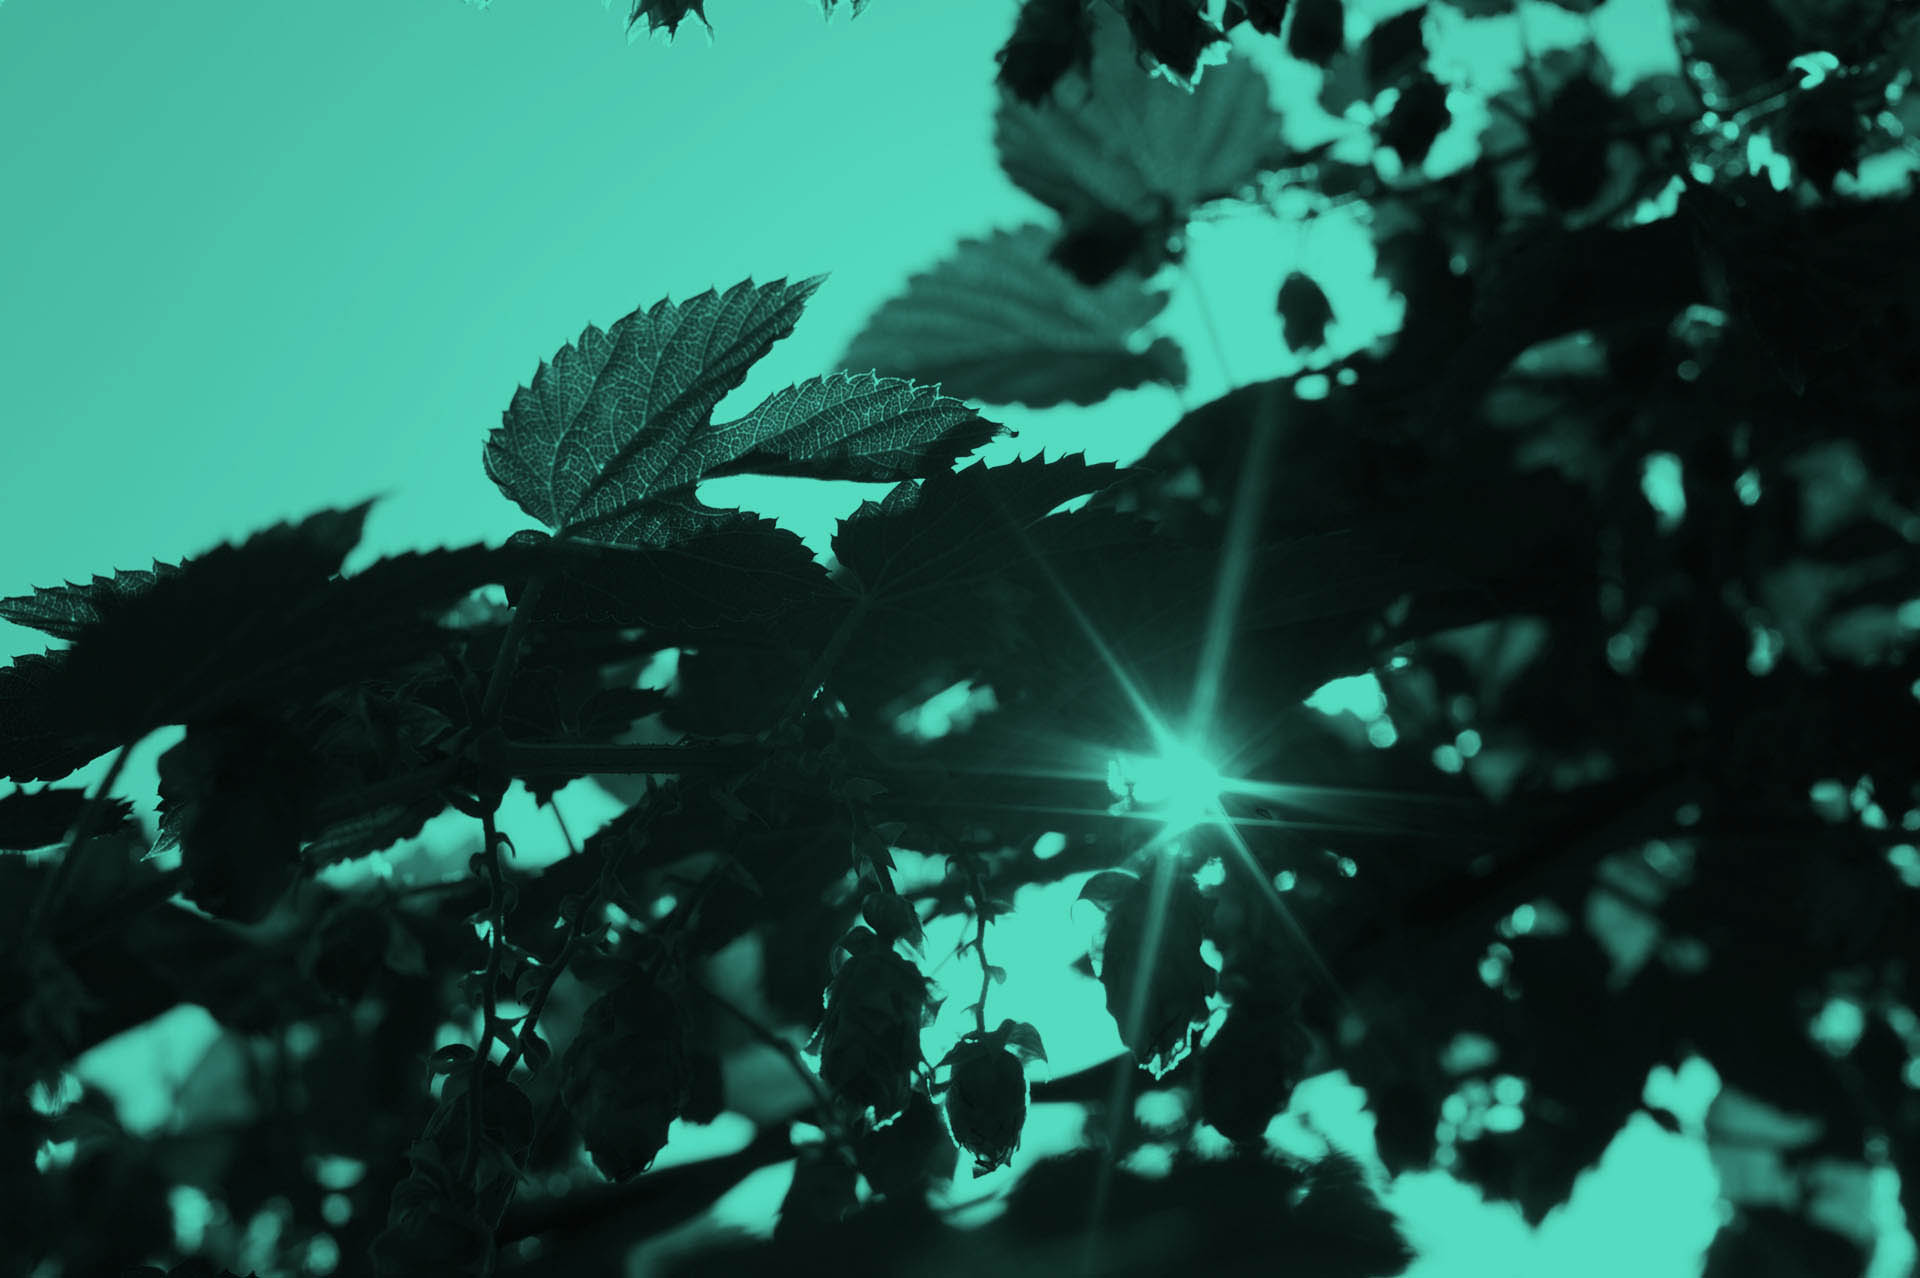 A close view through green leafs hanging from a tree into the blue sky and the sun.